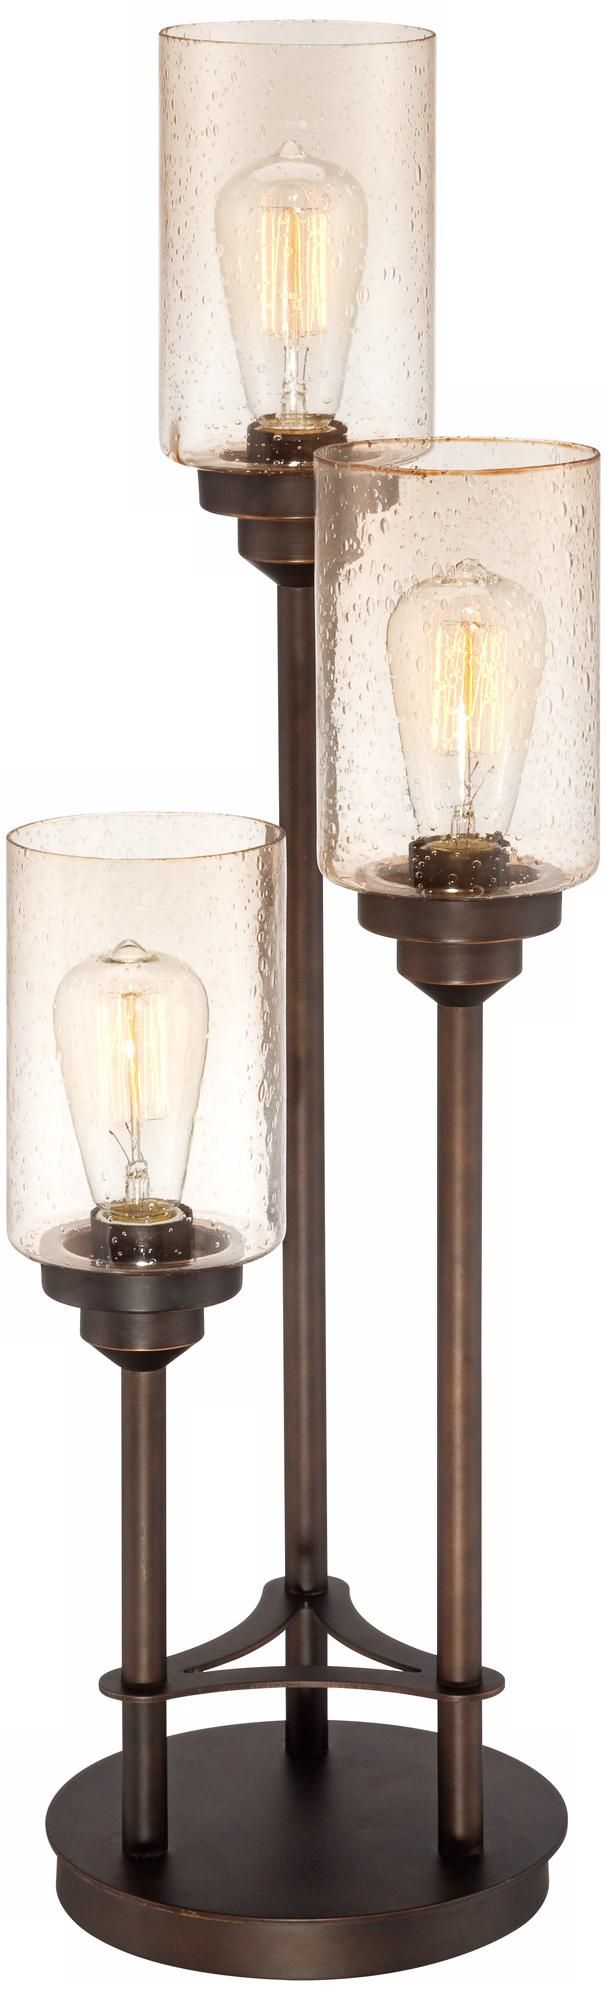 Libby 3-Light  Industrial Console Lamp with Edison Bulbs                                                                                                                                                                                 More